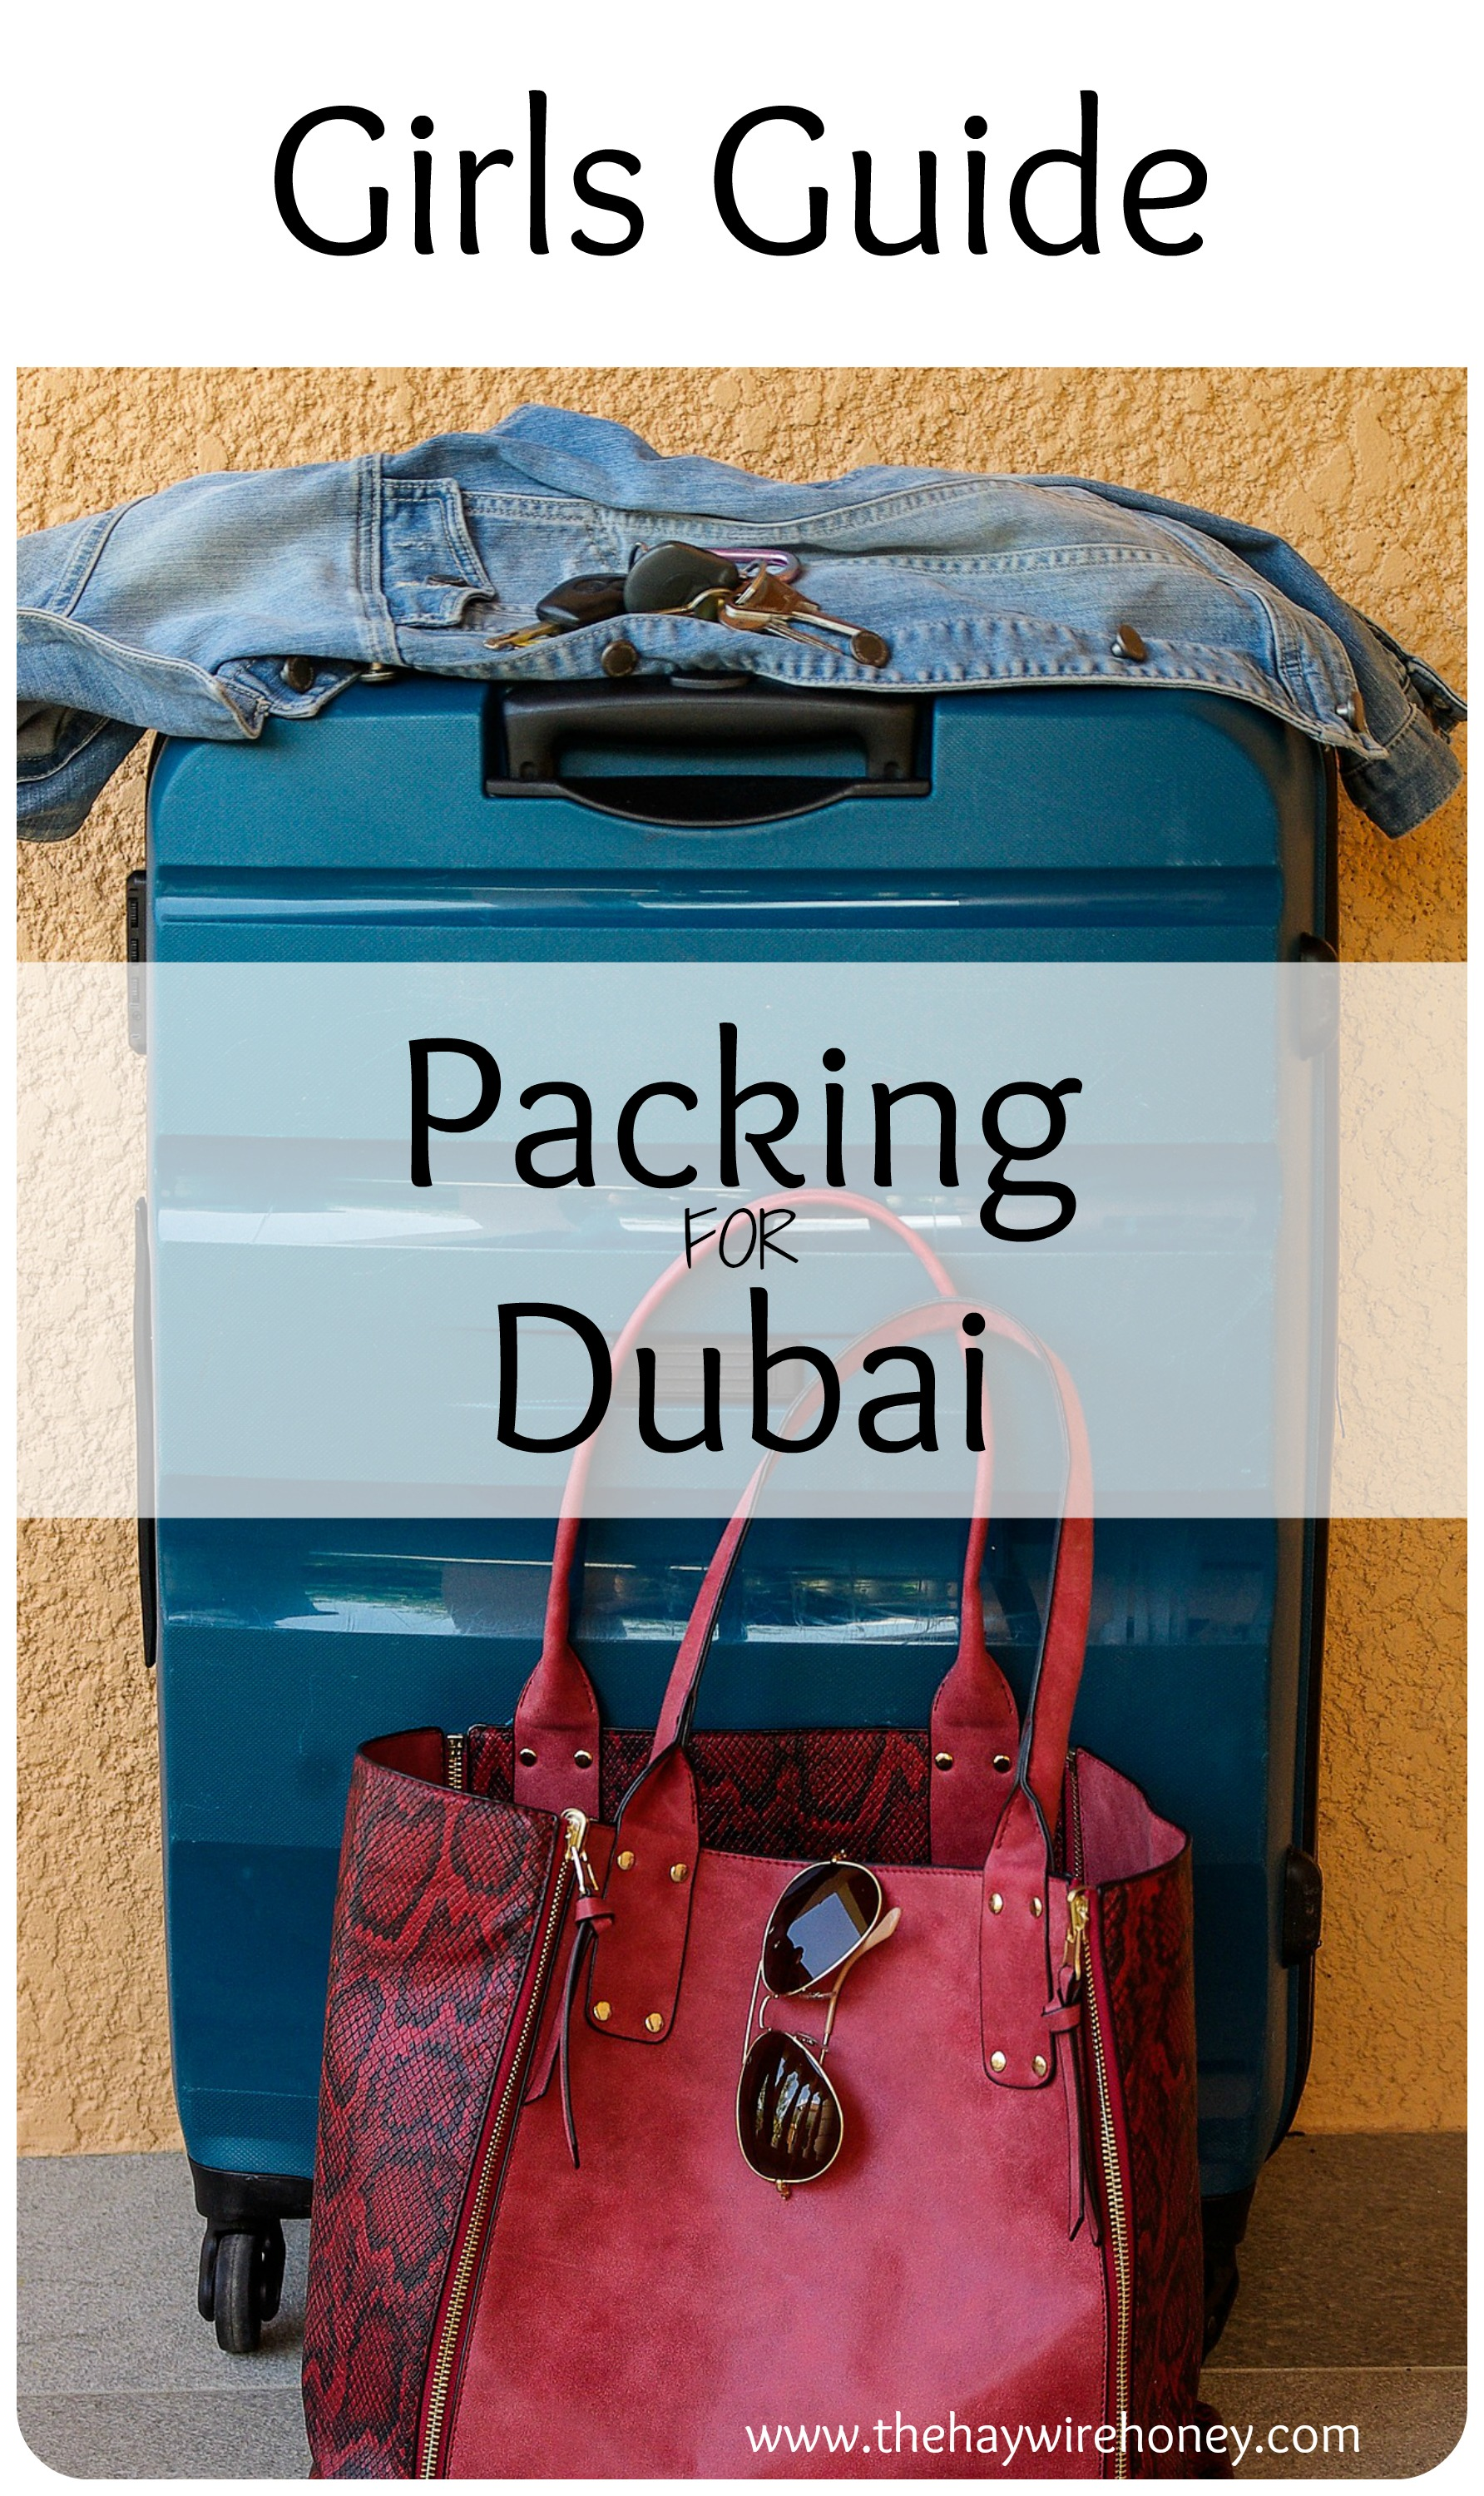 girls-guide-to-packing-for-dubai